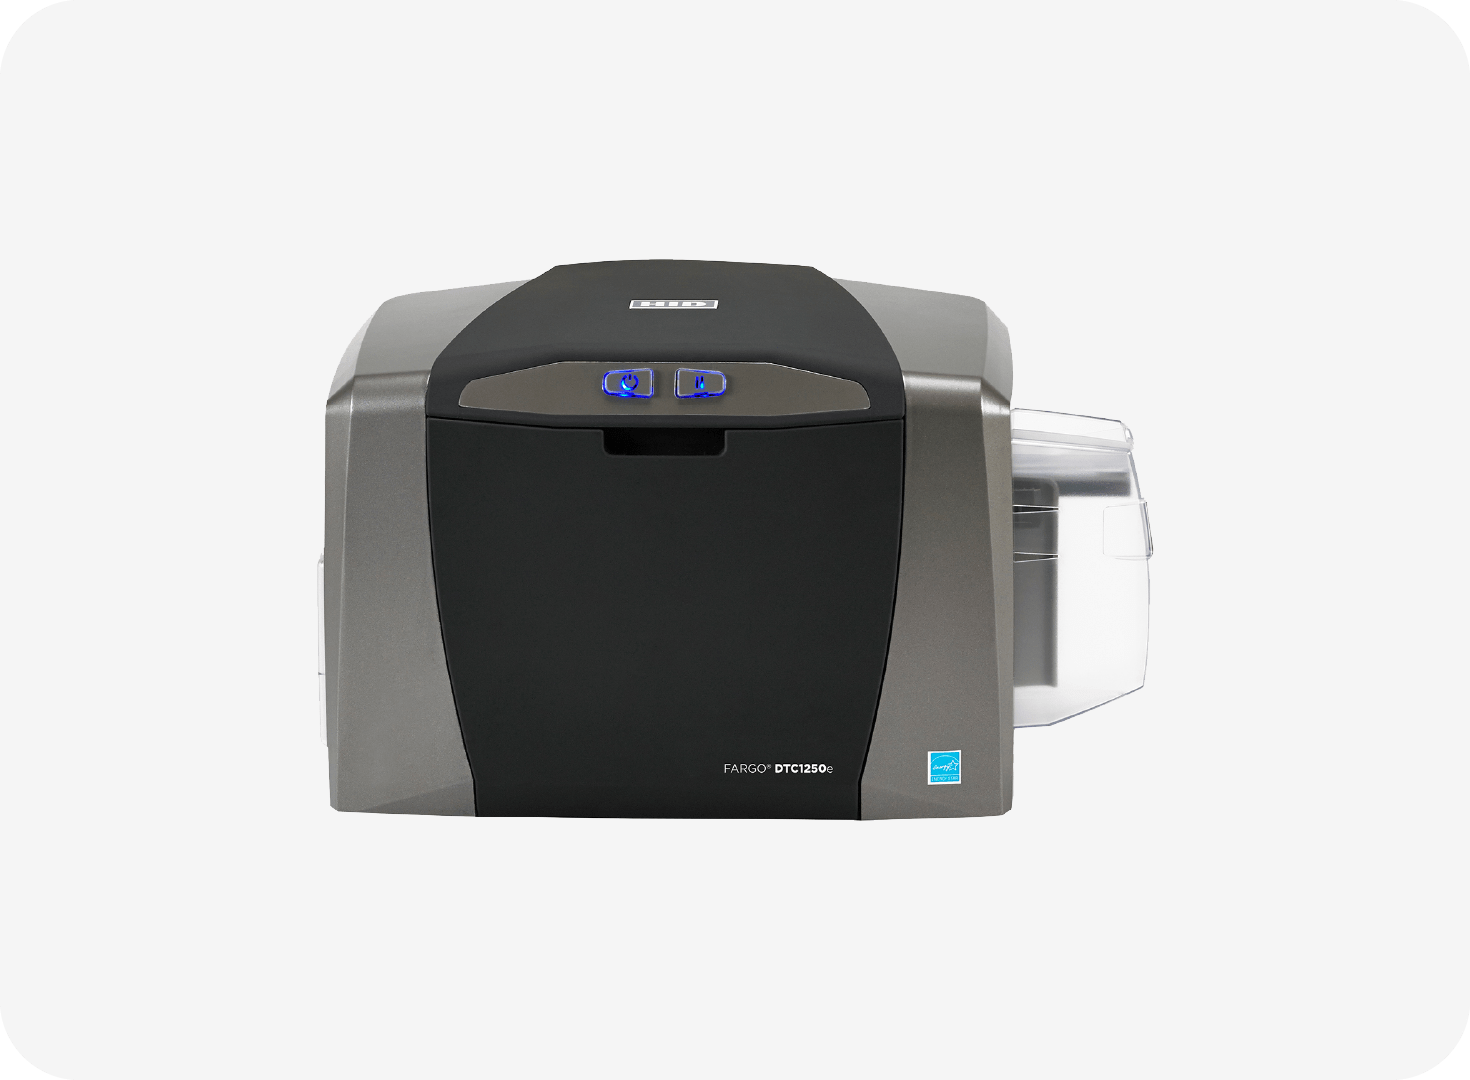 HID FARGO DTC1250e ID Direct to Card Printer & Encoder